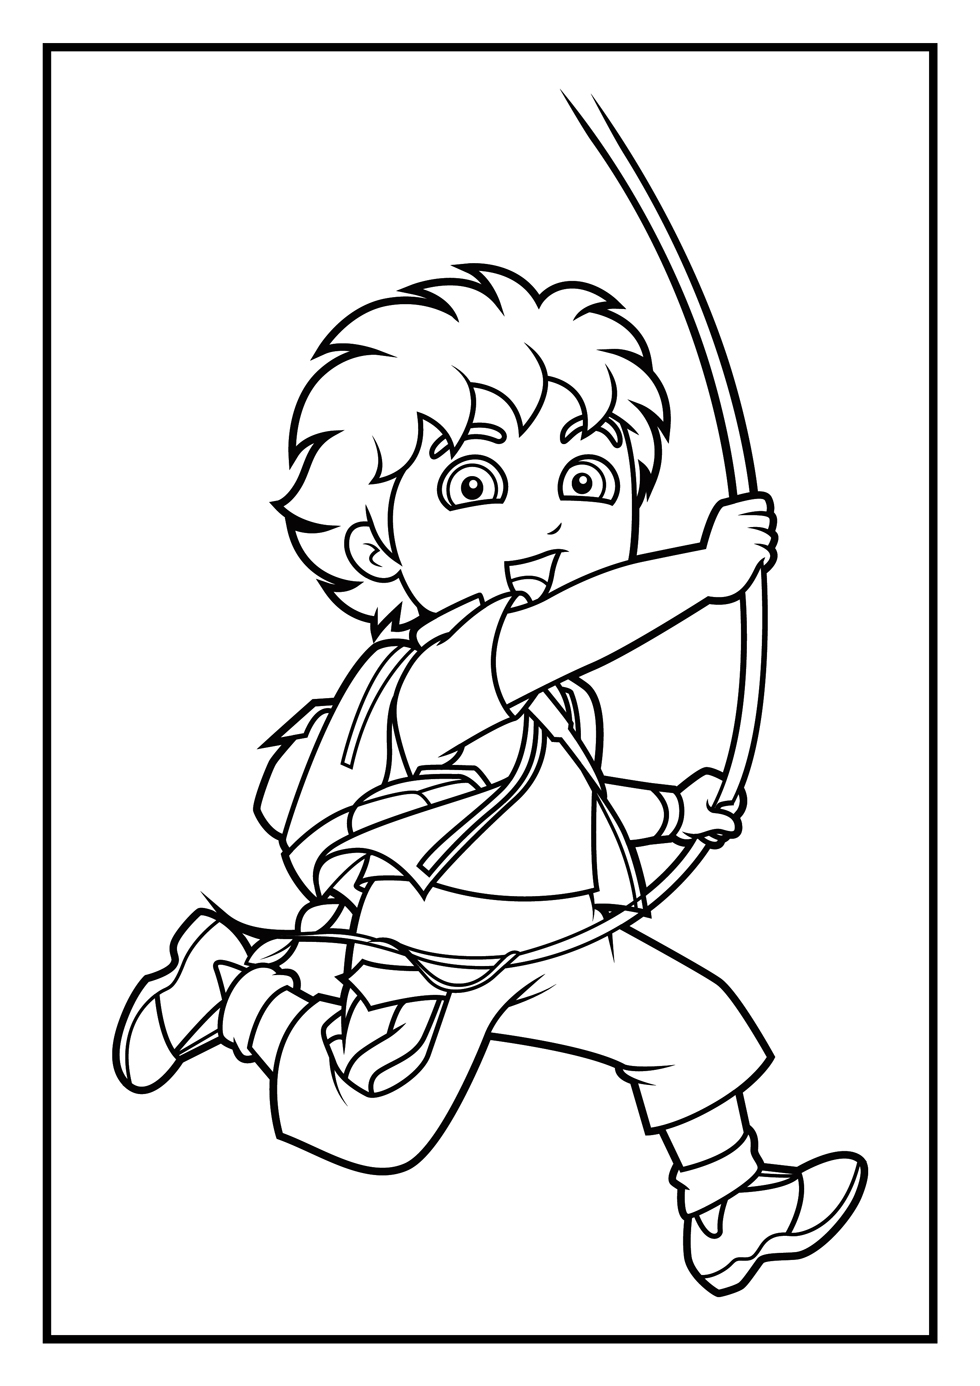 san diego coloring pages logo of san diego padres coloring page printable game san pages diego coloring